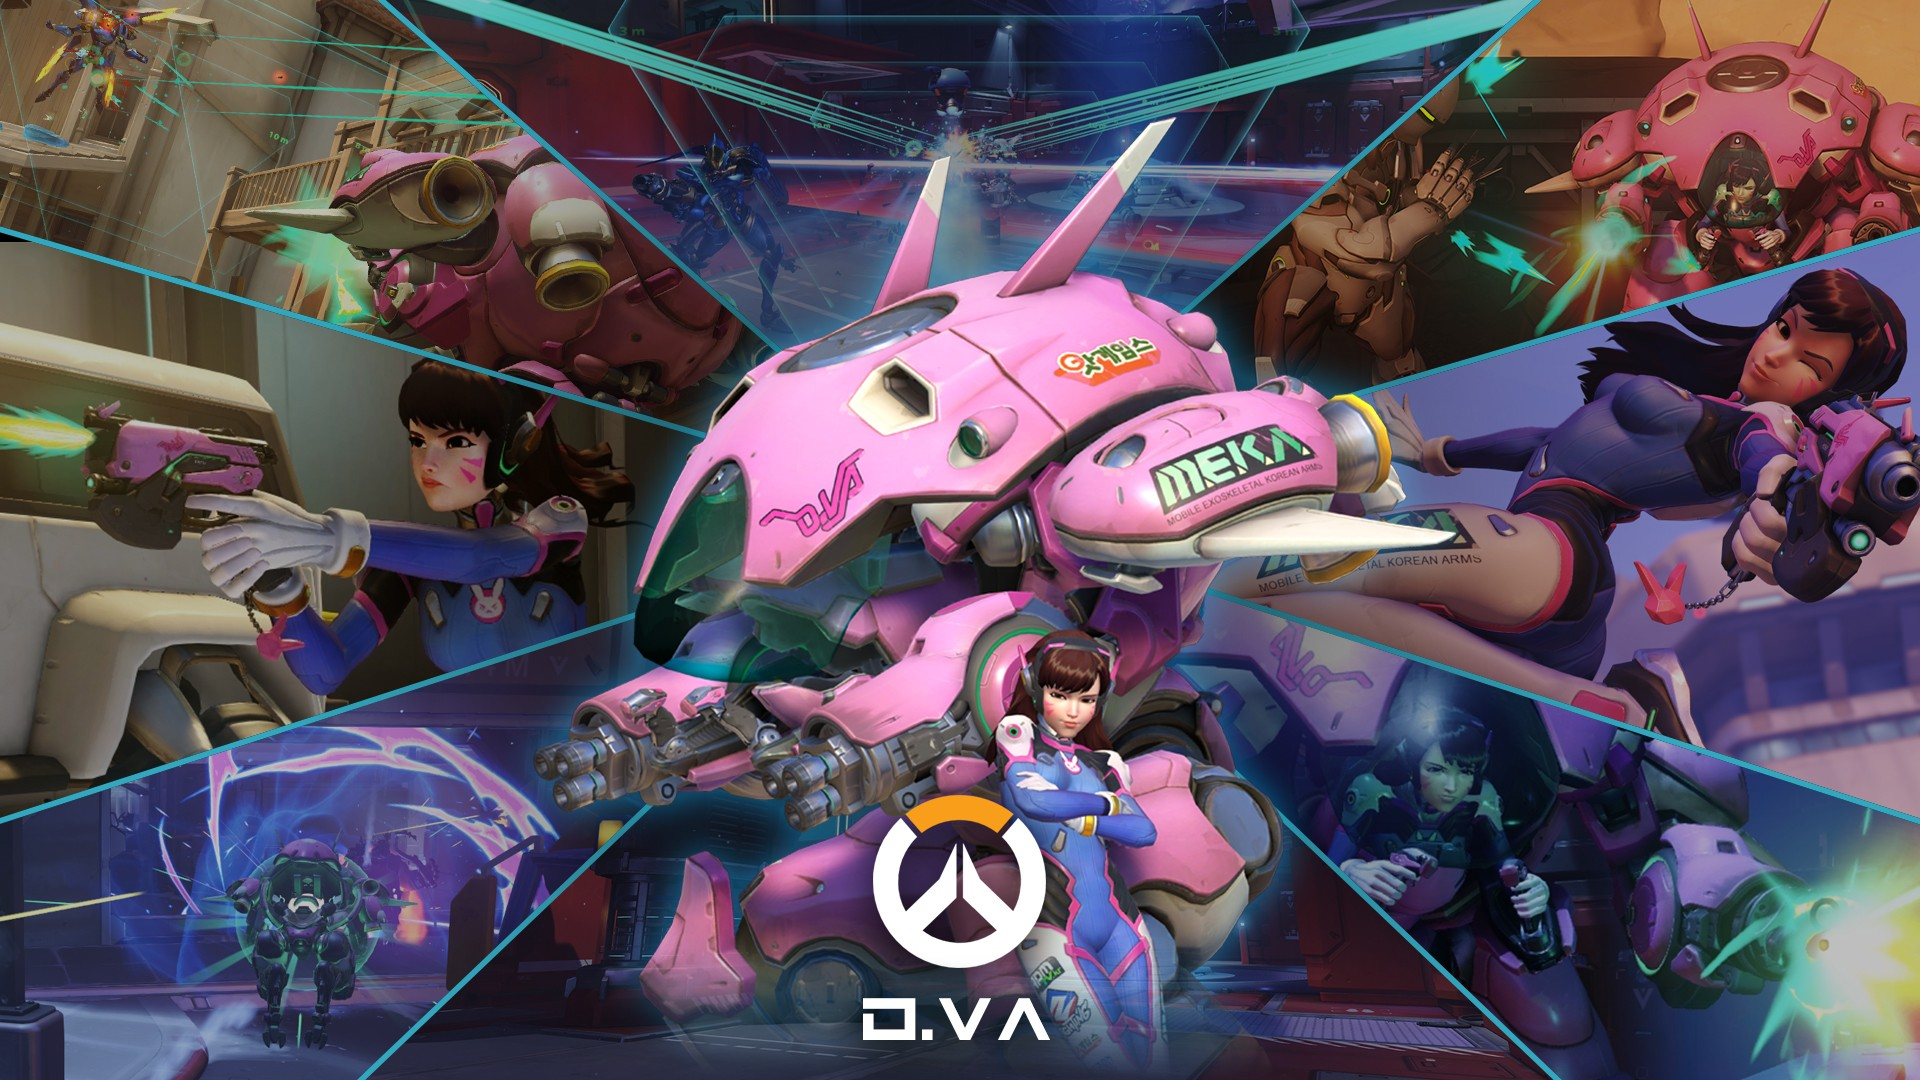 D.Va wallpaper ·① Download free awesome High Resolution ...